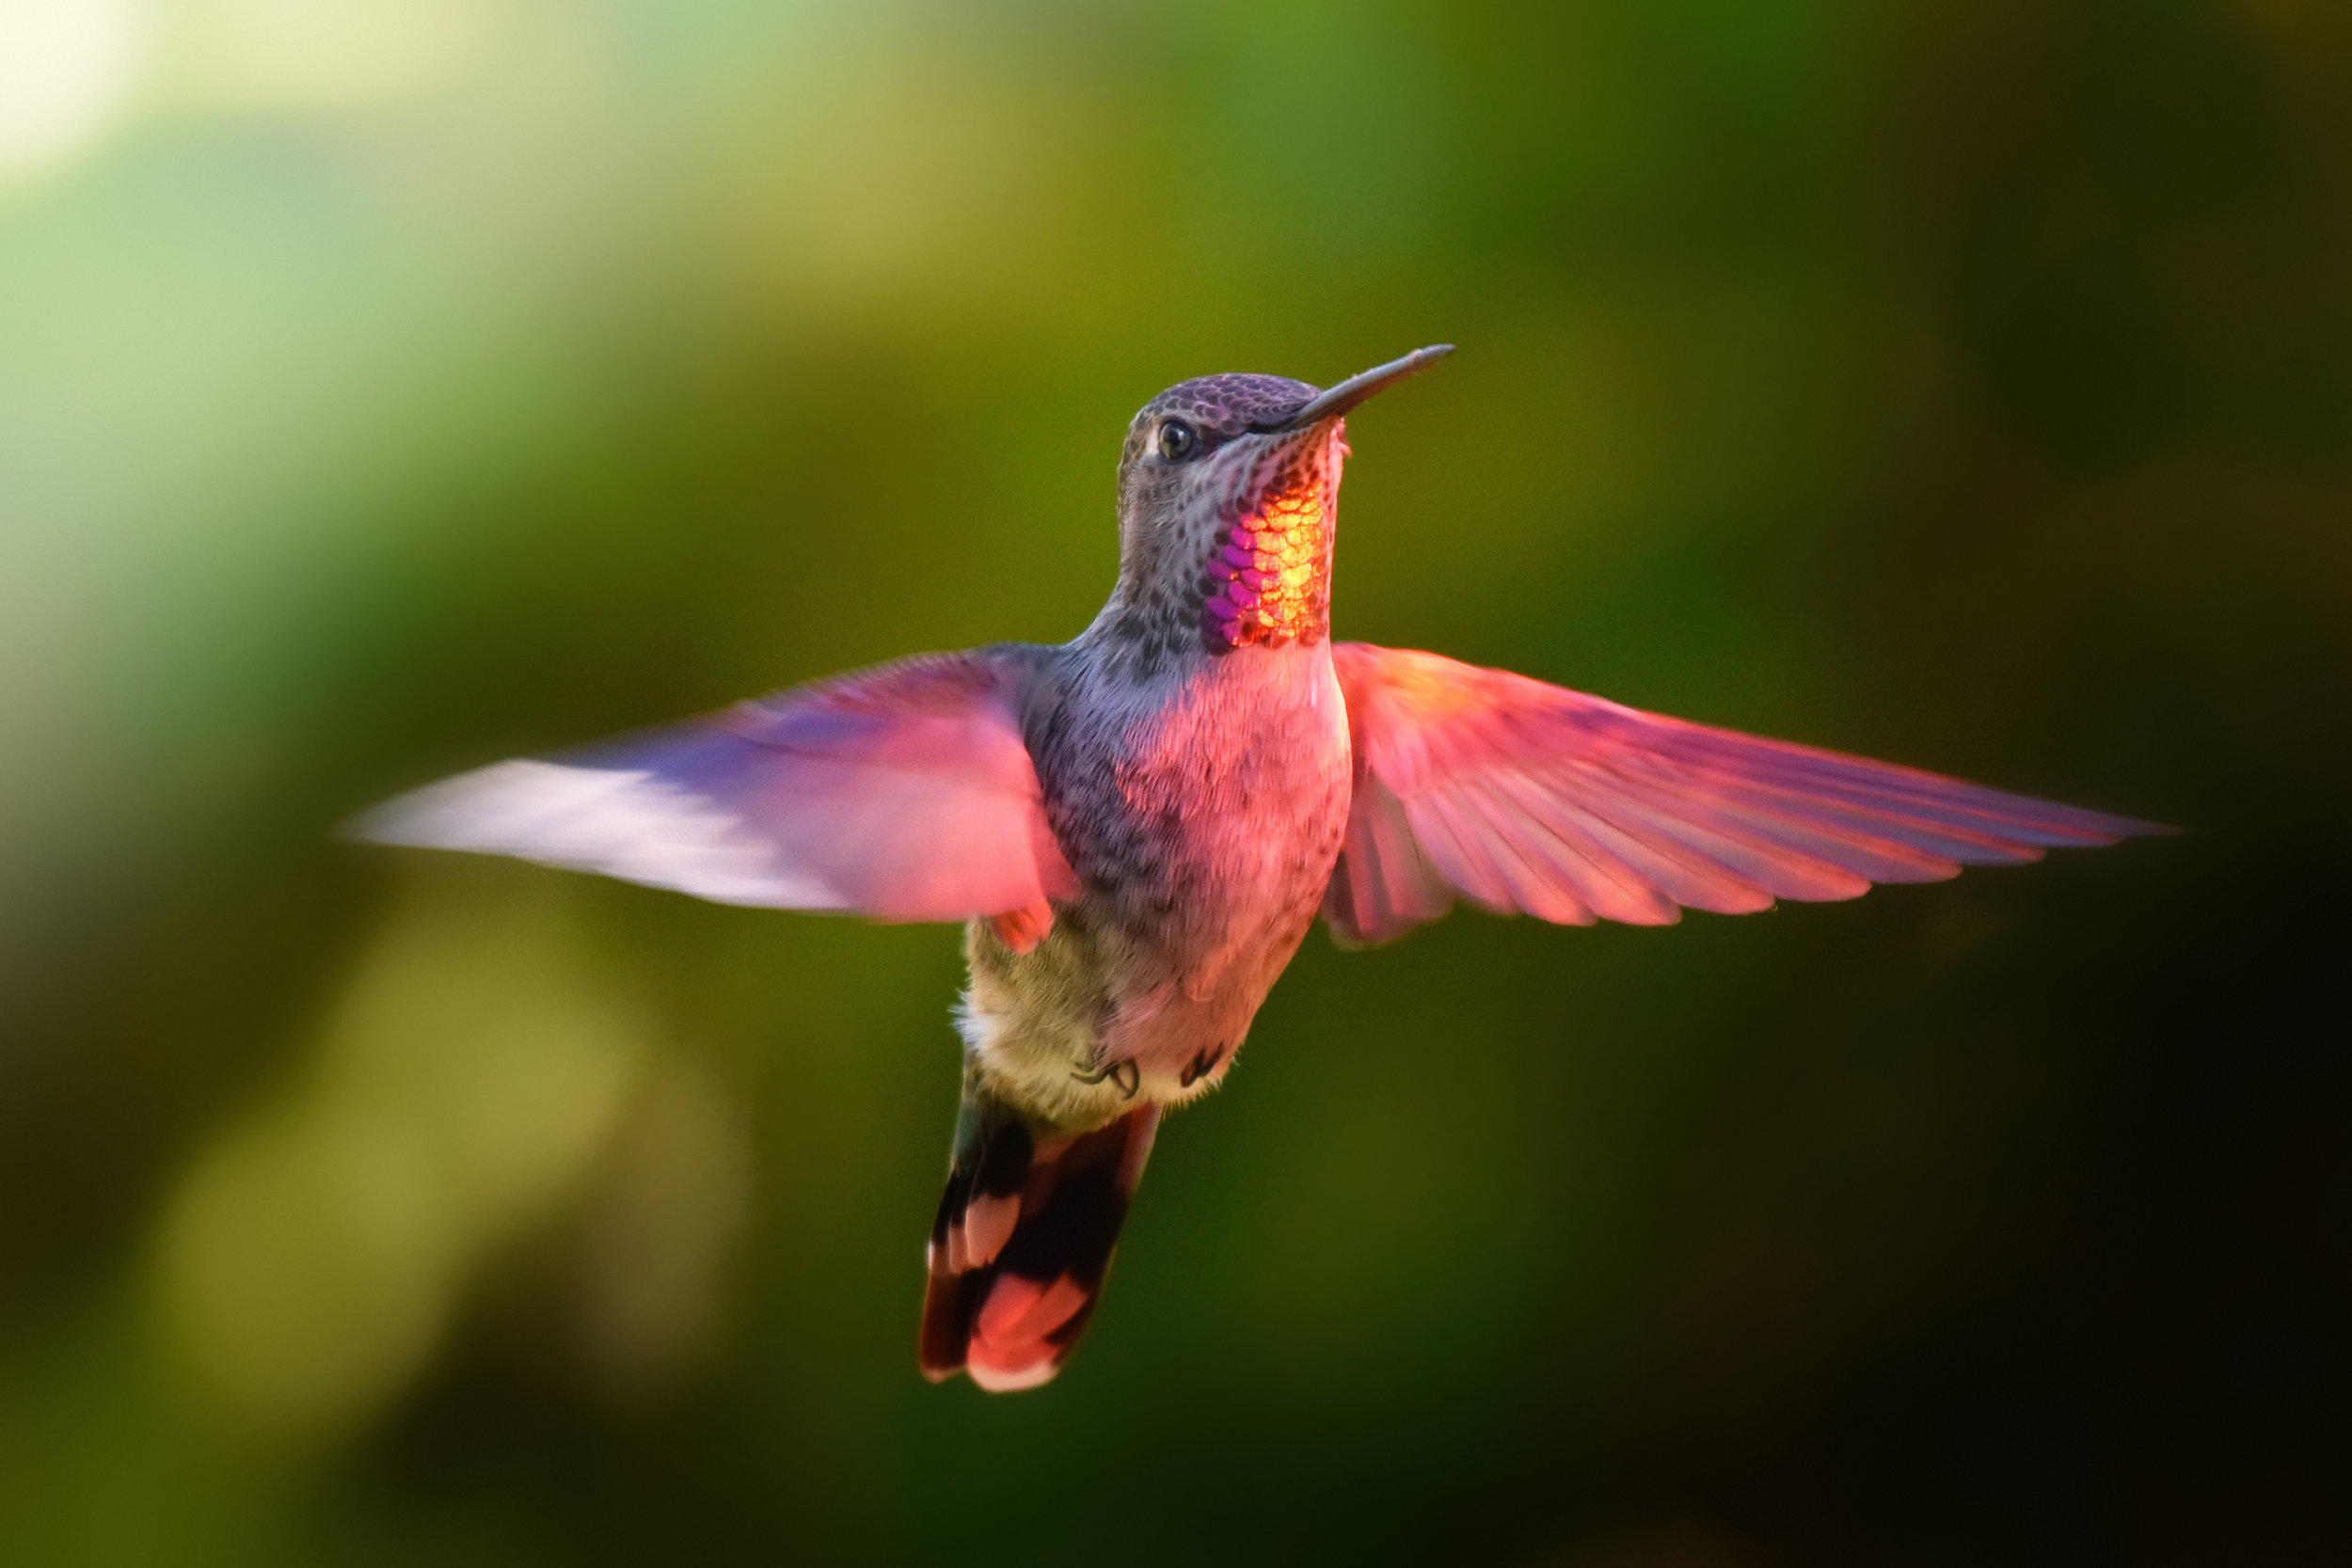 Hummingbird - Image provided by: Alberto GuillenWILDLIFE PHOTOGRAPHY AND ARTContact Alberto for photo inquiry at:Email: jaguillen@centurylink.net